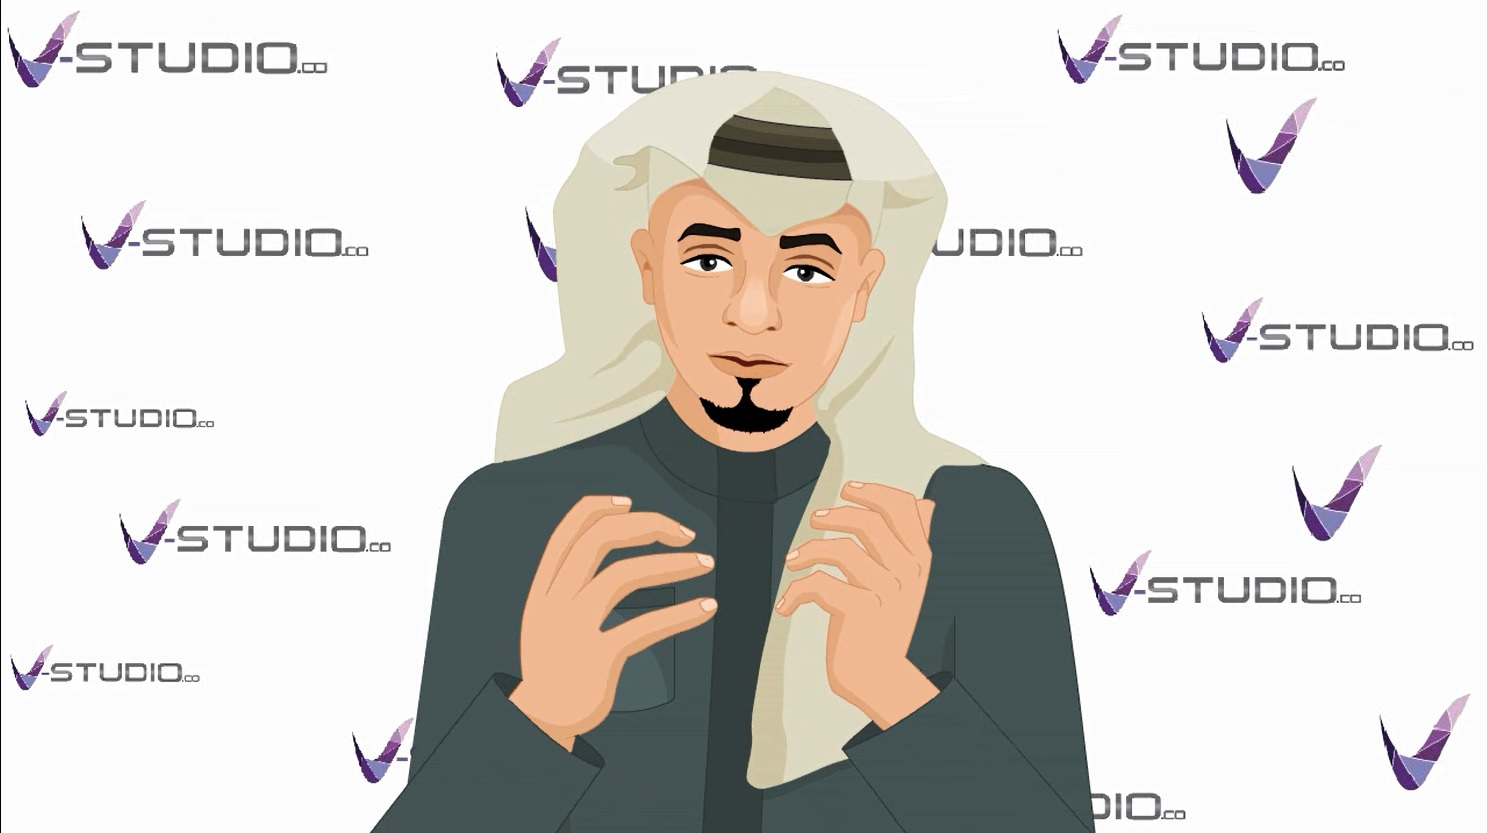 2D Animation And 3D Visualization by V-Studio